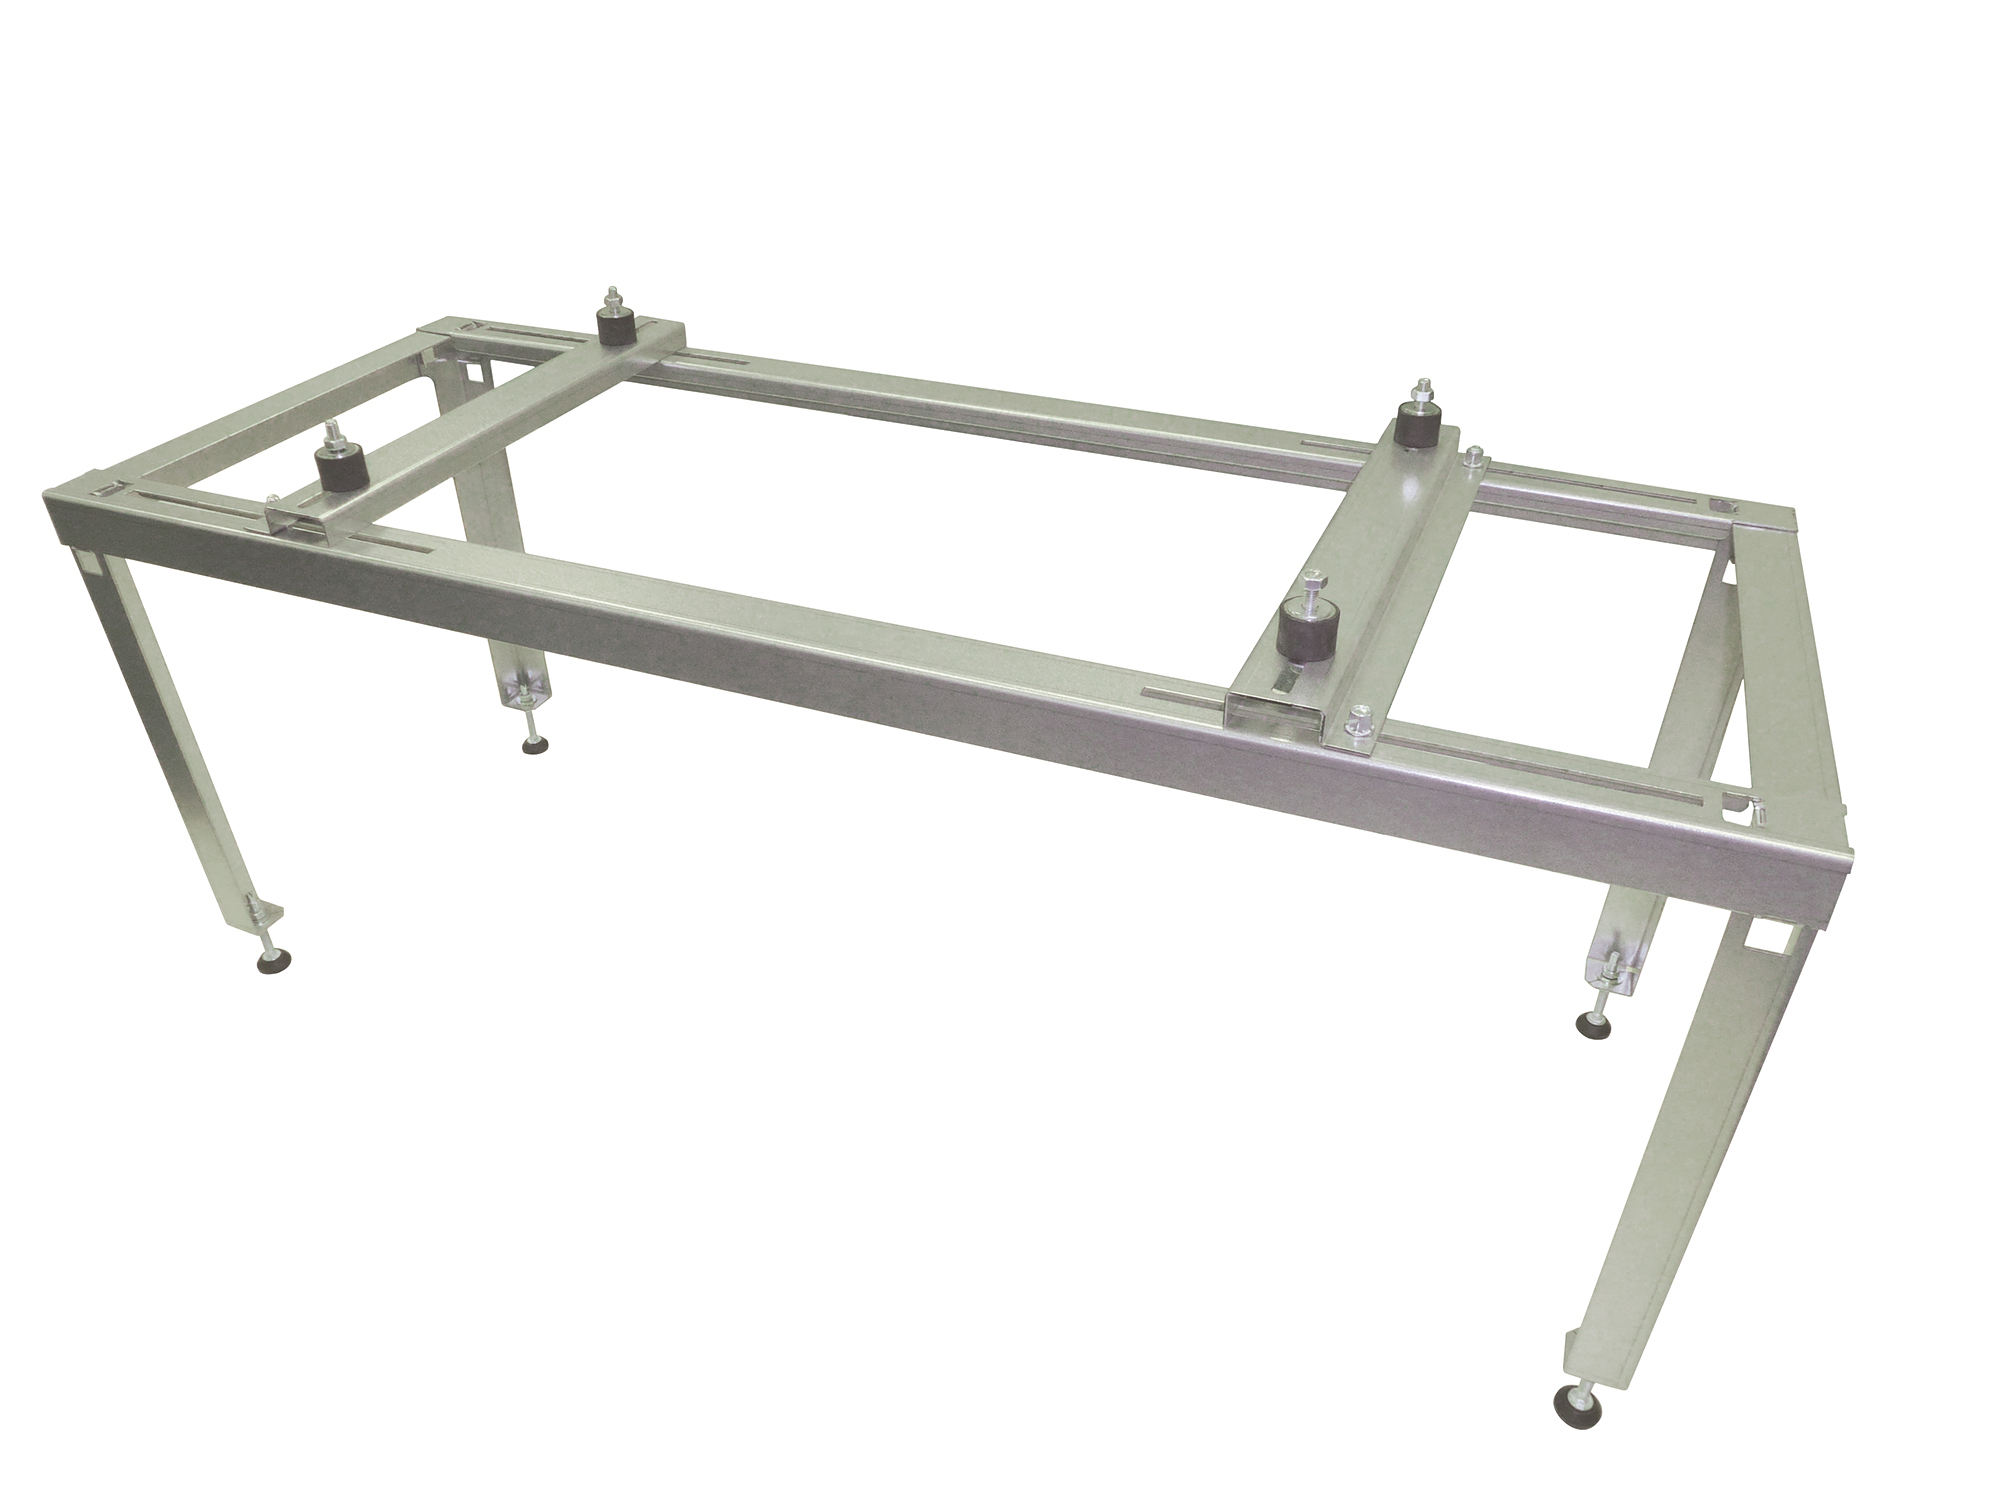 Tray for condenser water compatible with outdoor elevation platform.